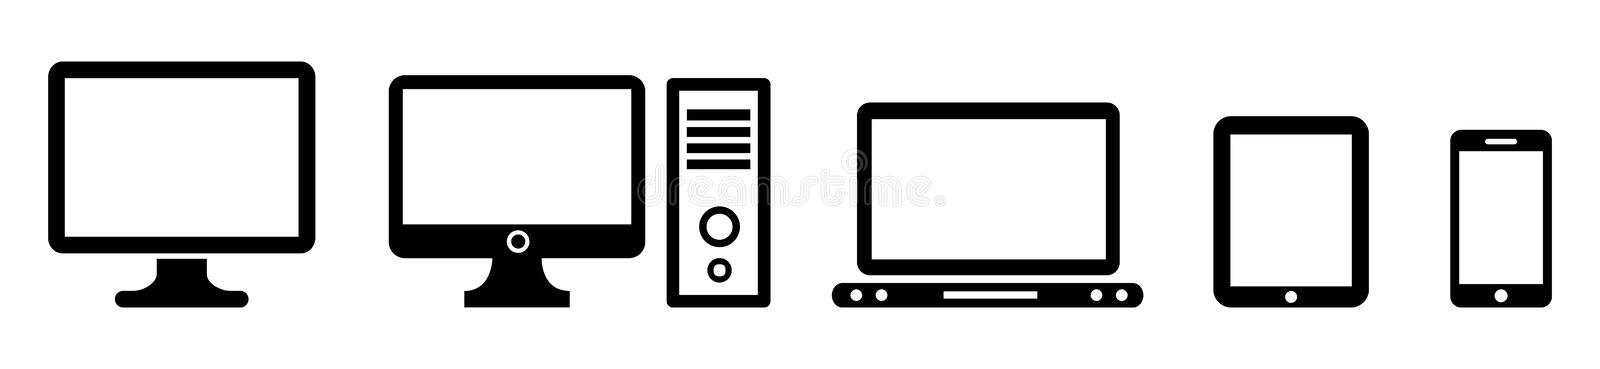 Black set technology devices icon stock illustration